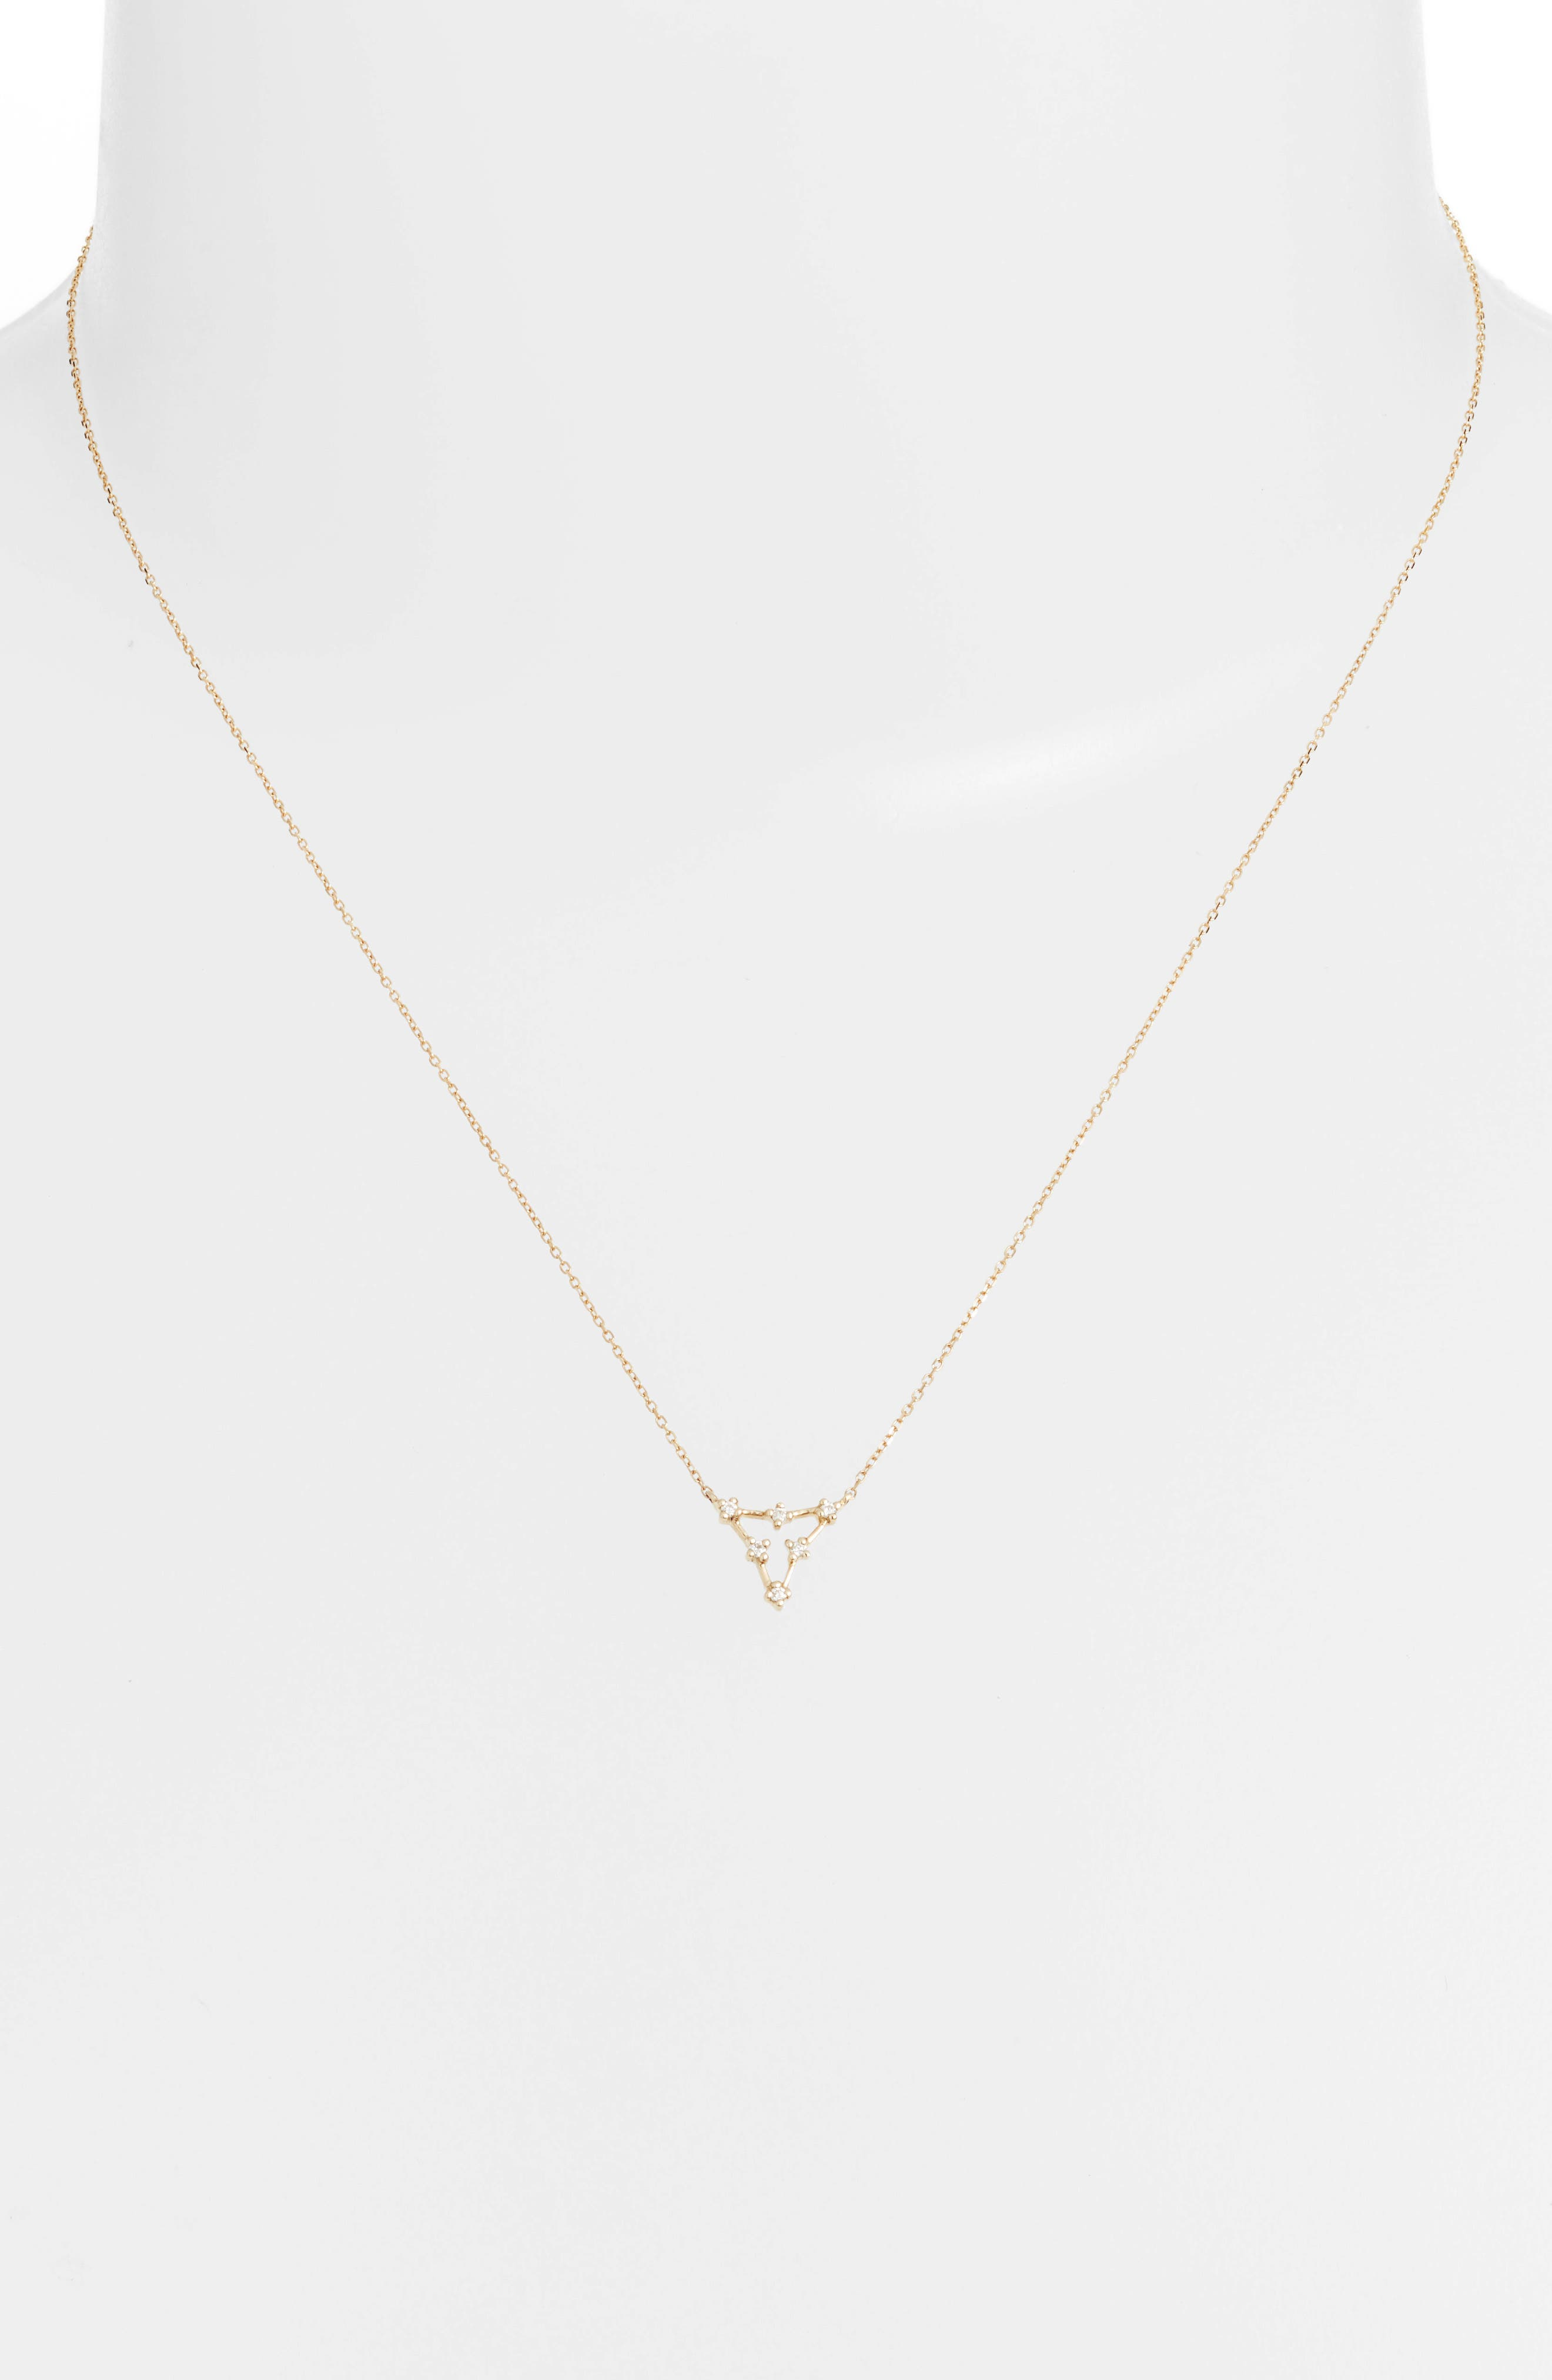 Ava Bea Triangle Necklace,                             Alternate thumbnail 2, color,                             YELLOW GOLD